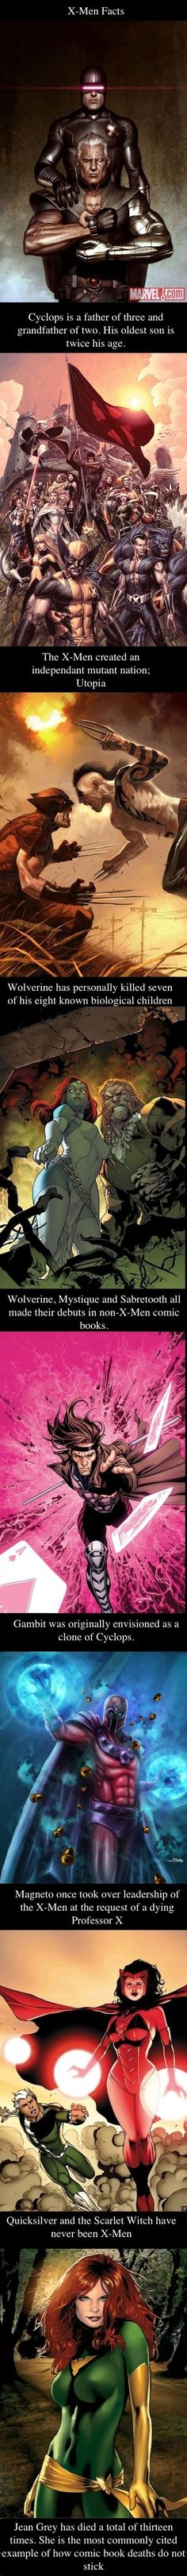 X-Men Facts Compilation // funny pictures - funny photos - funny images - funny pics - funny quotes - #lol #humor #funnypictures